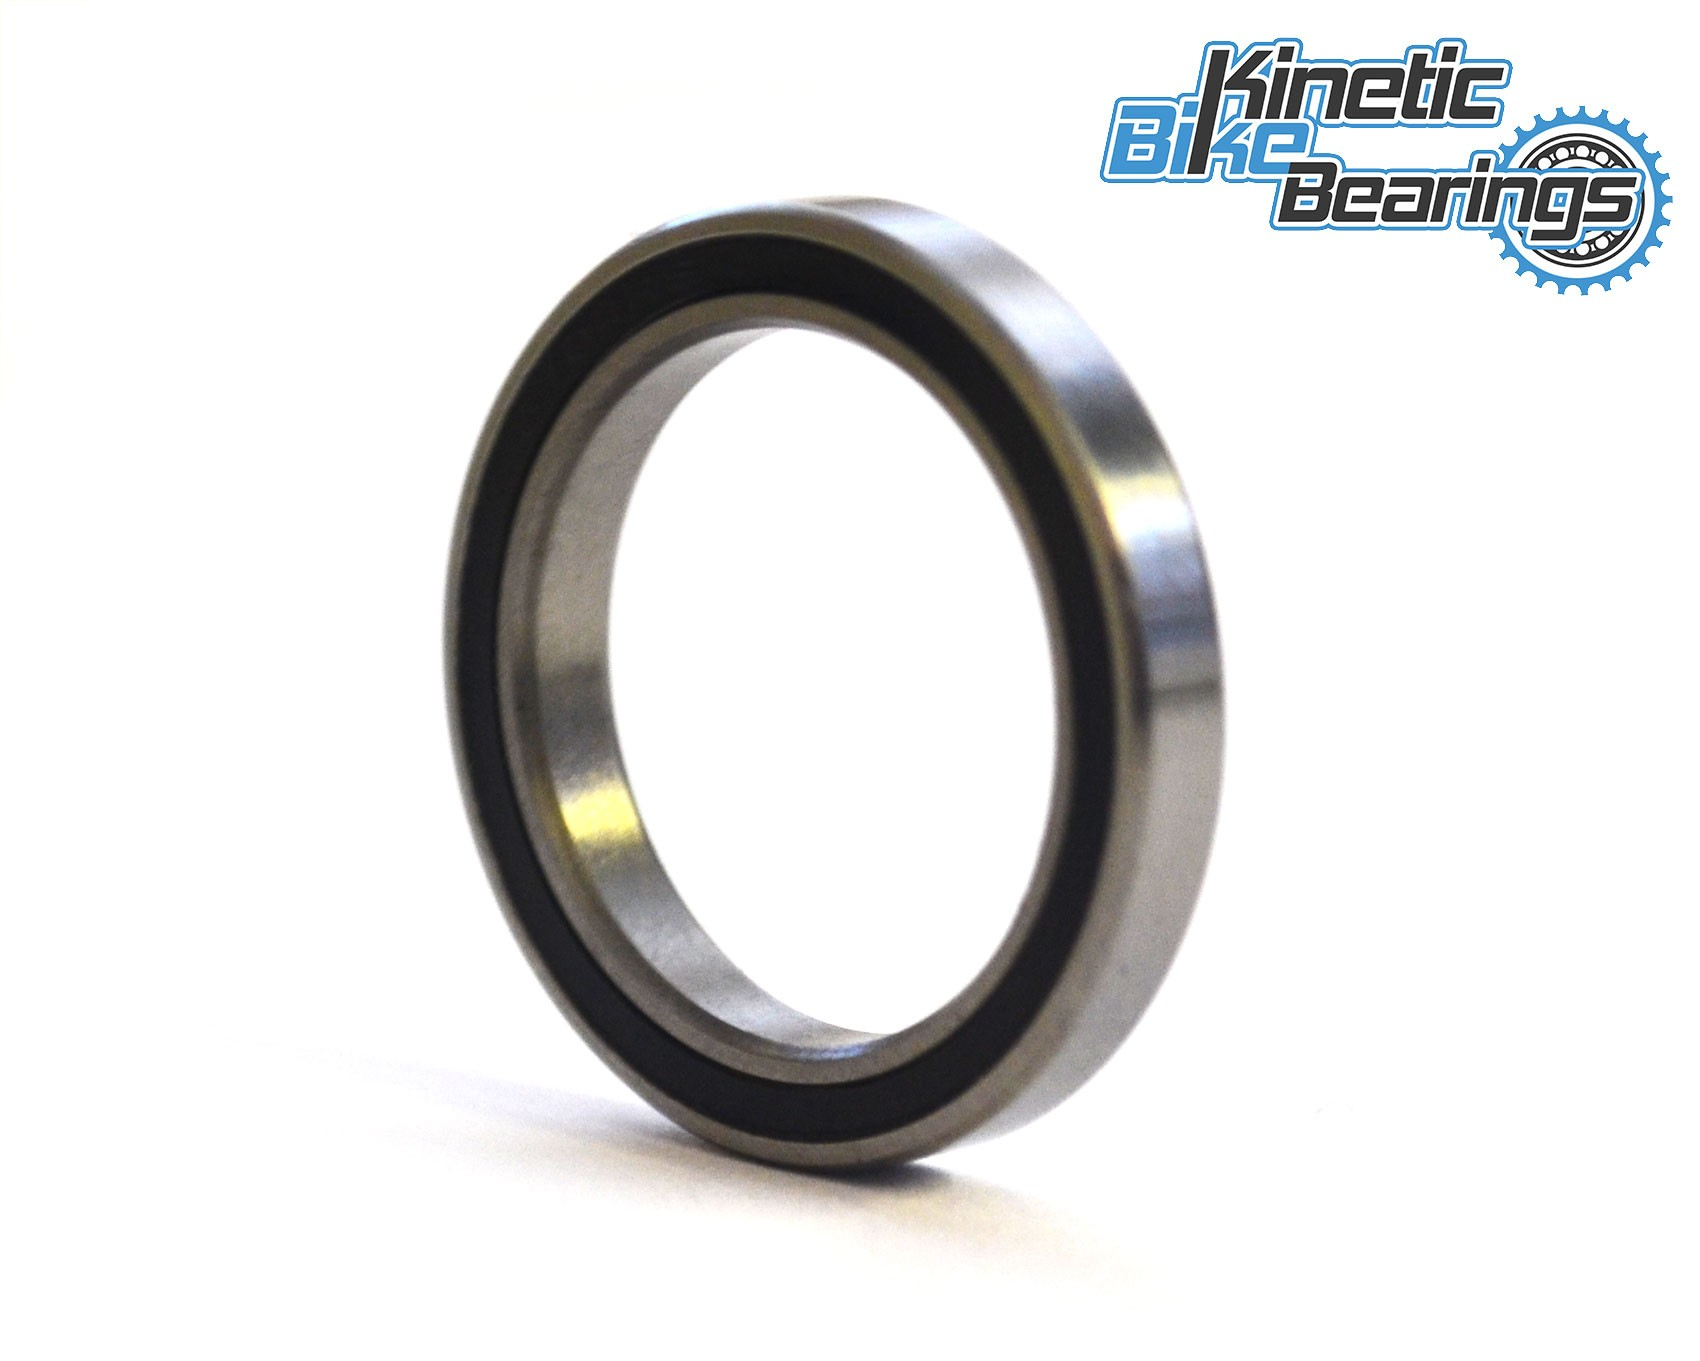 Kinetic 6903-2rs bearing